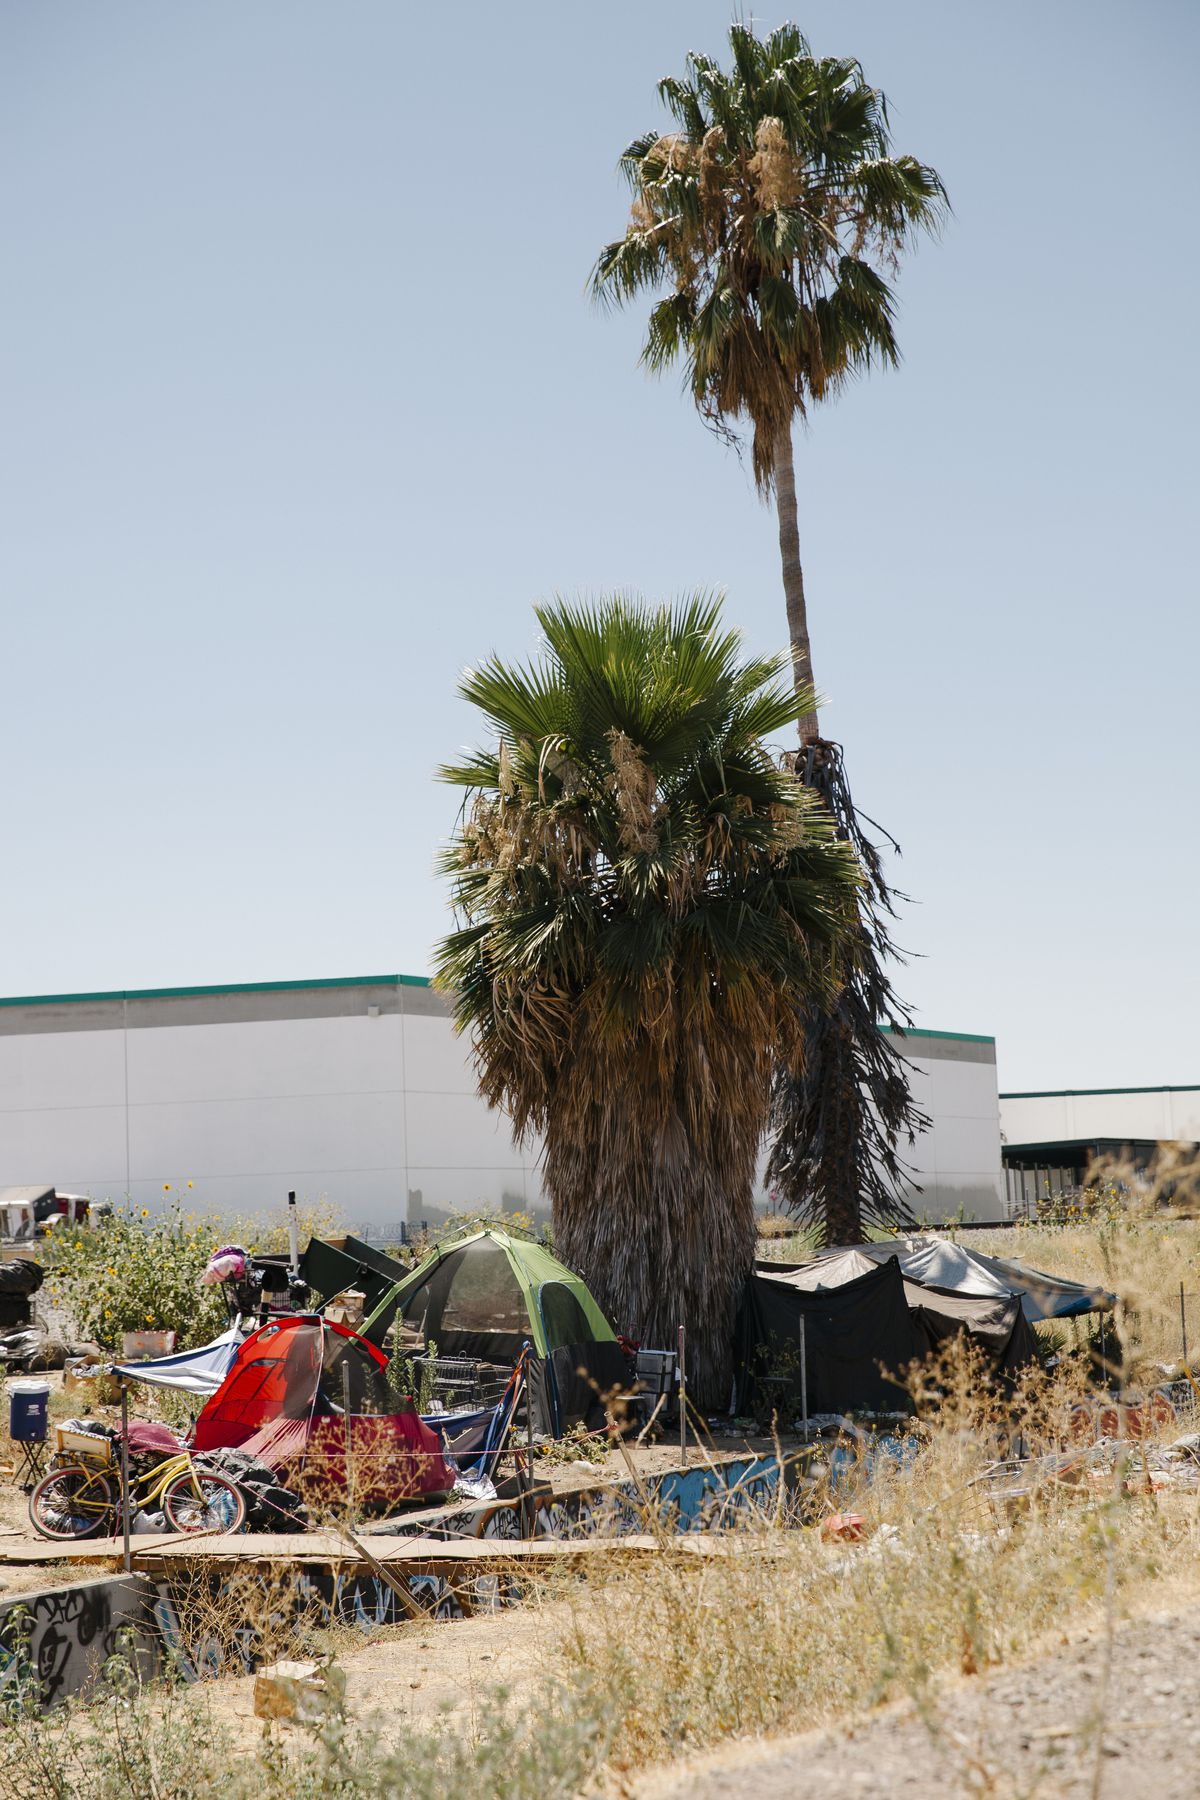 Red and green tents are pitched next to a pair of large palm trees. Warehouses are visible in the background.